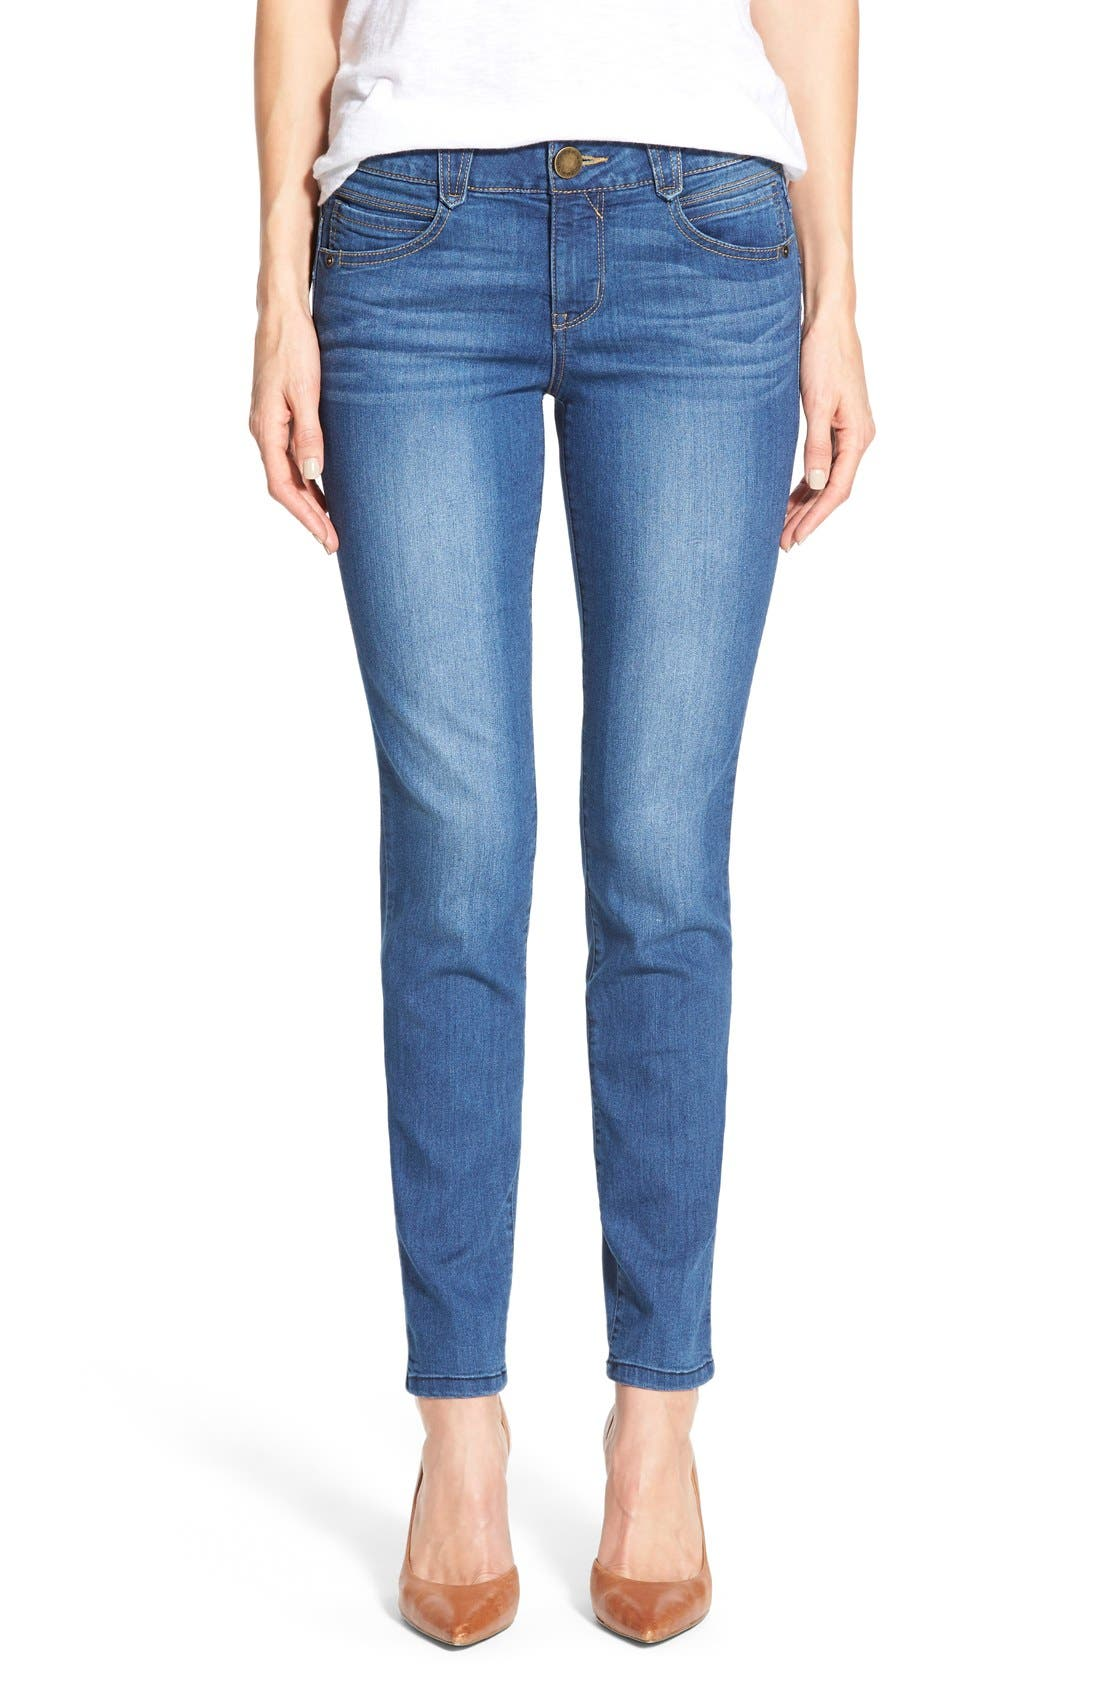 Main Image - Wit & Wisdom 'Ab-solution' Booty Lift Stretch Skinny Jeans (Nordstrom Exclusive)